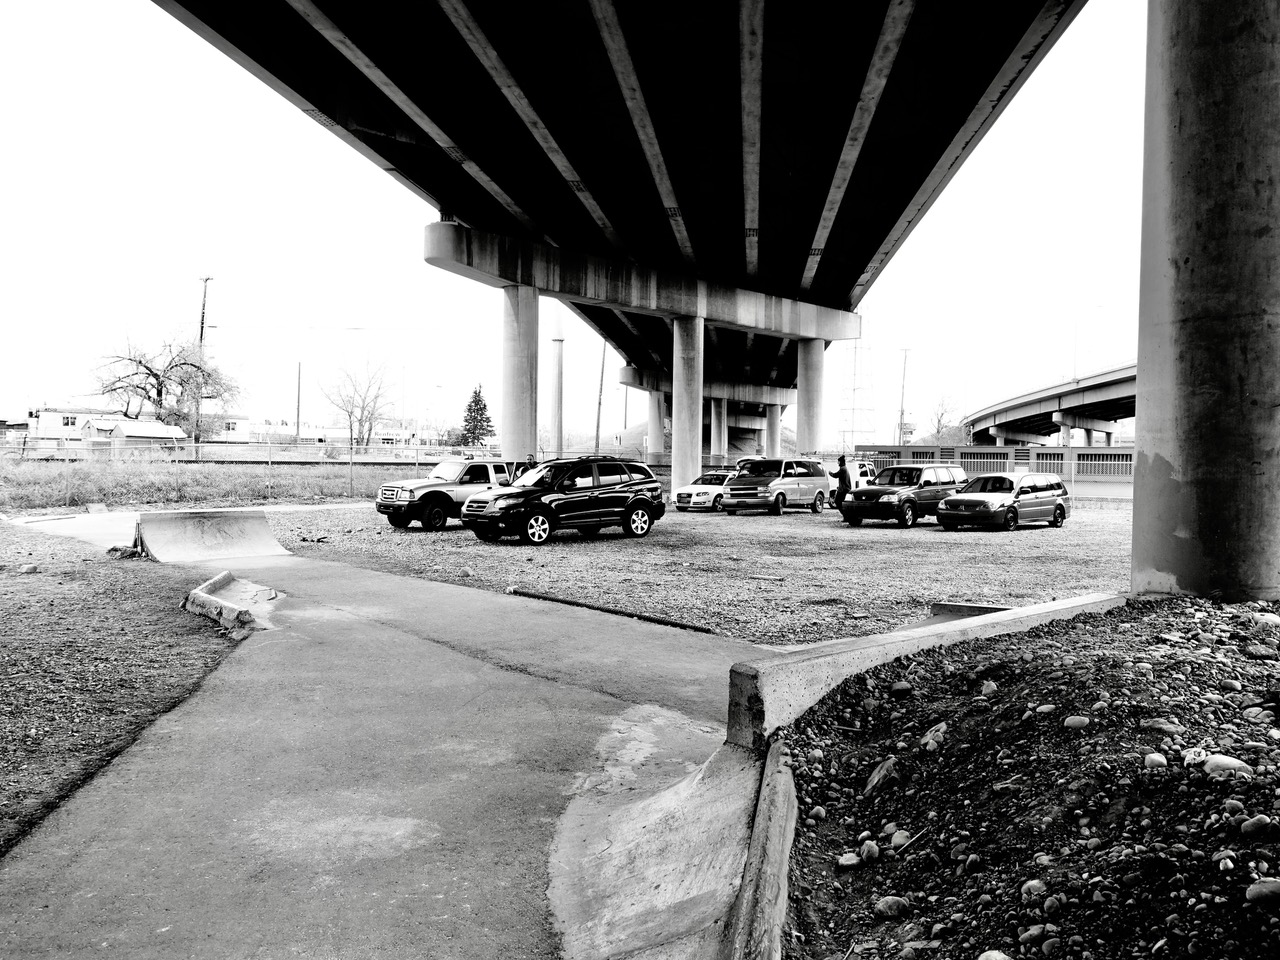 Under the Bow Trail bridge is a no man's land that is quietly becoming a DIY skatepark.